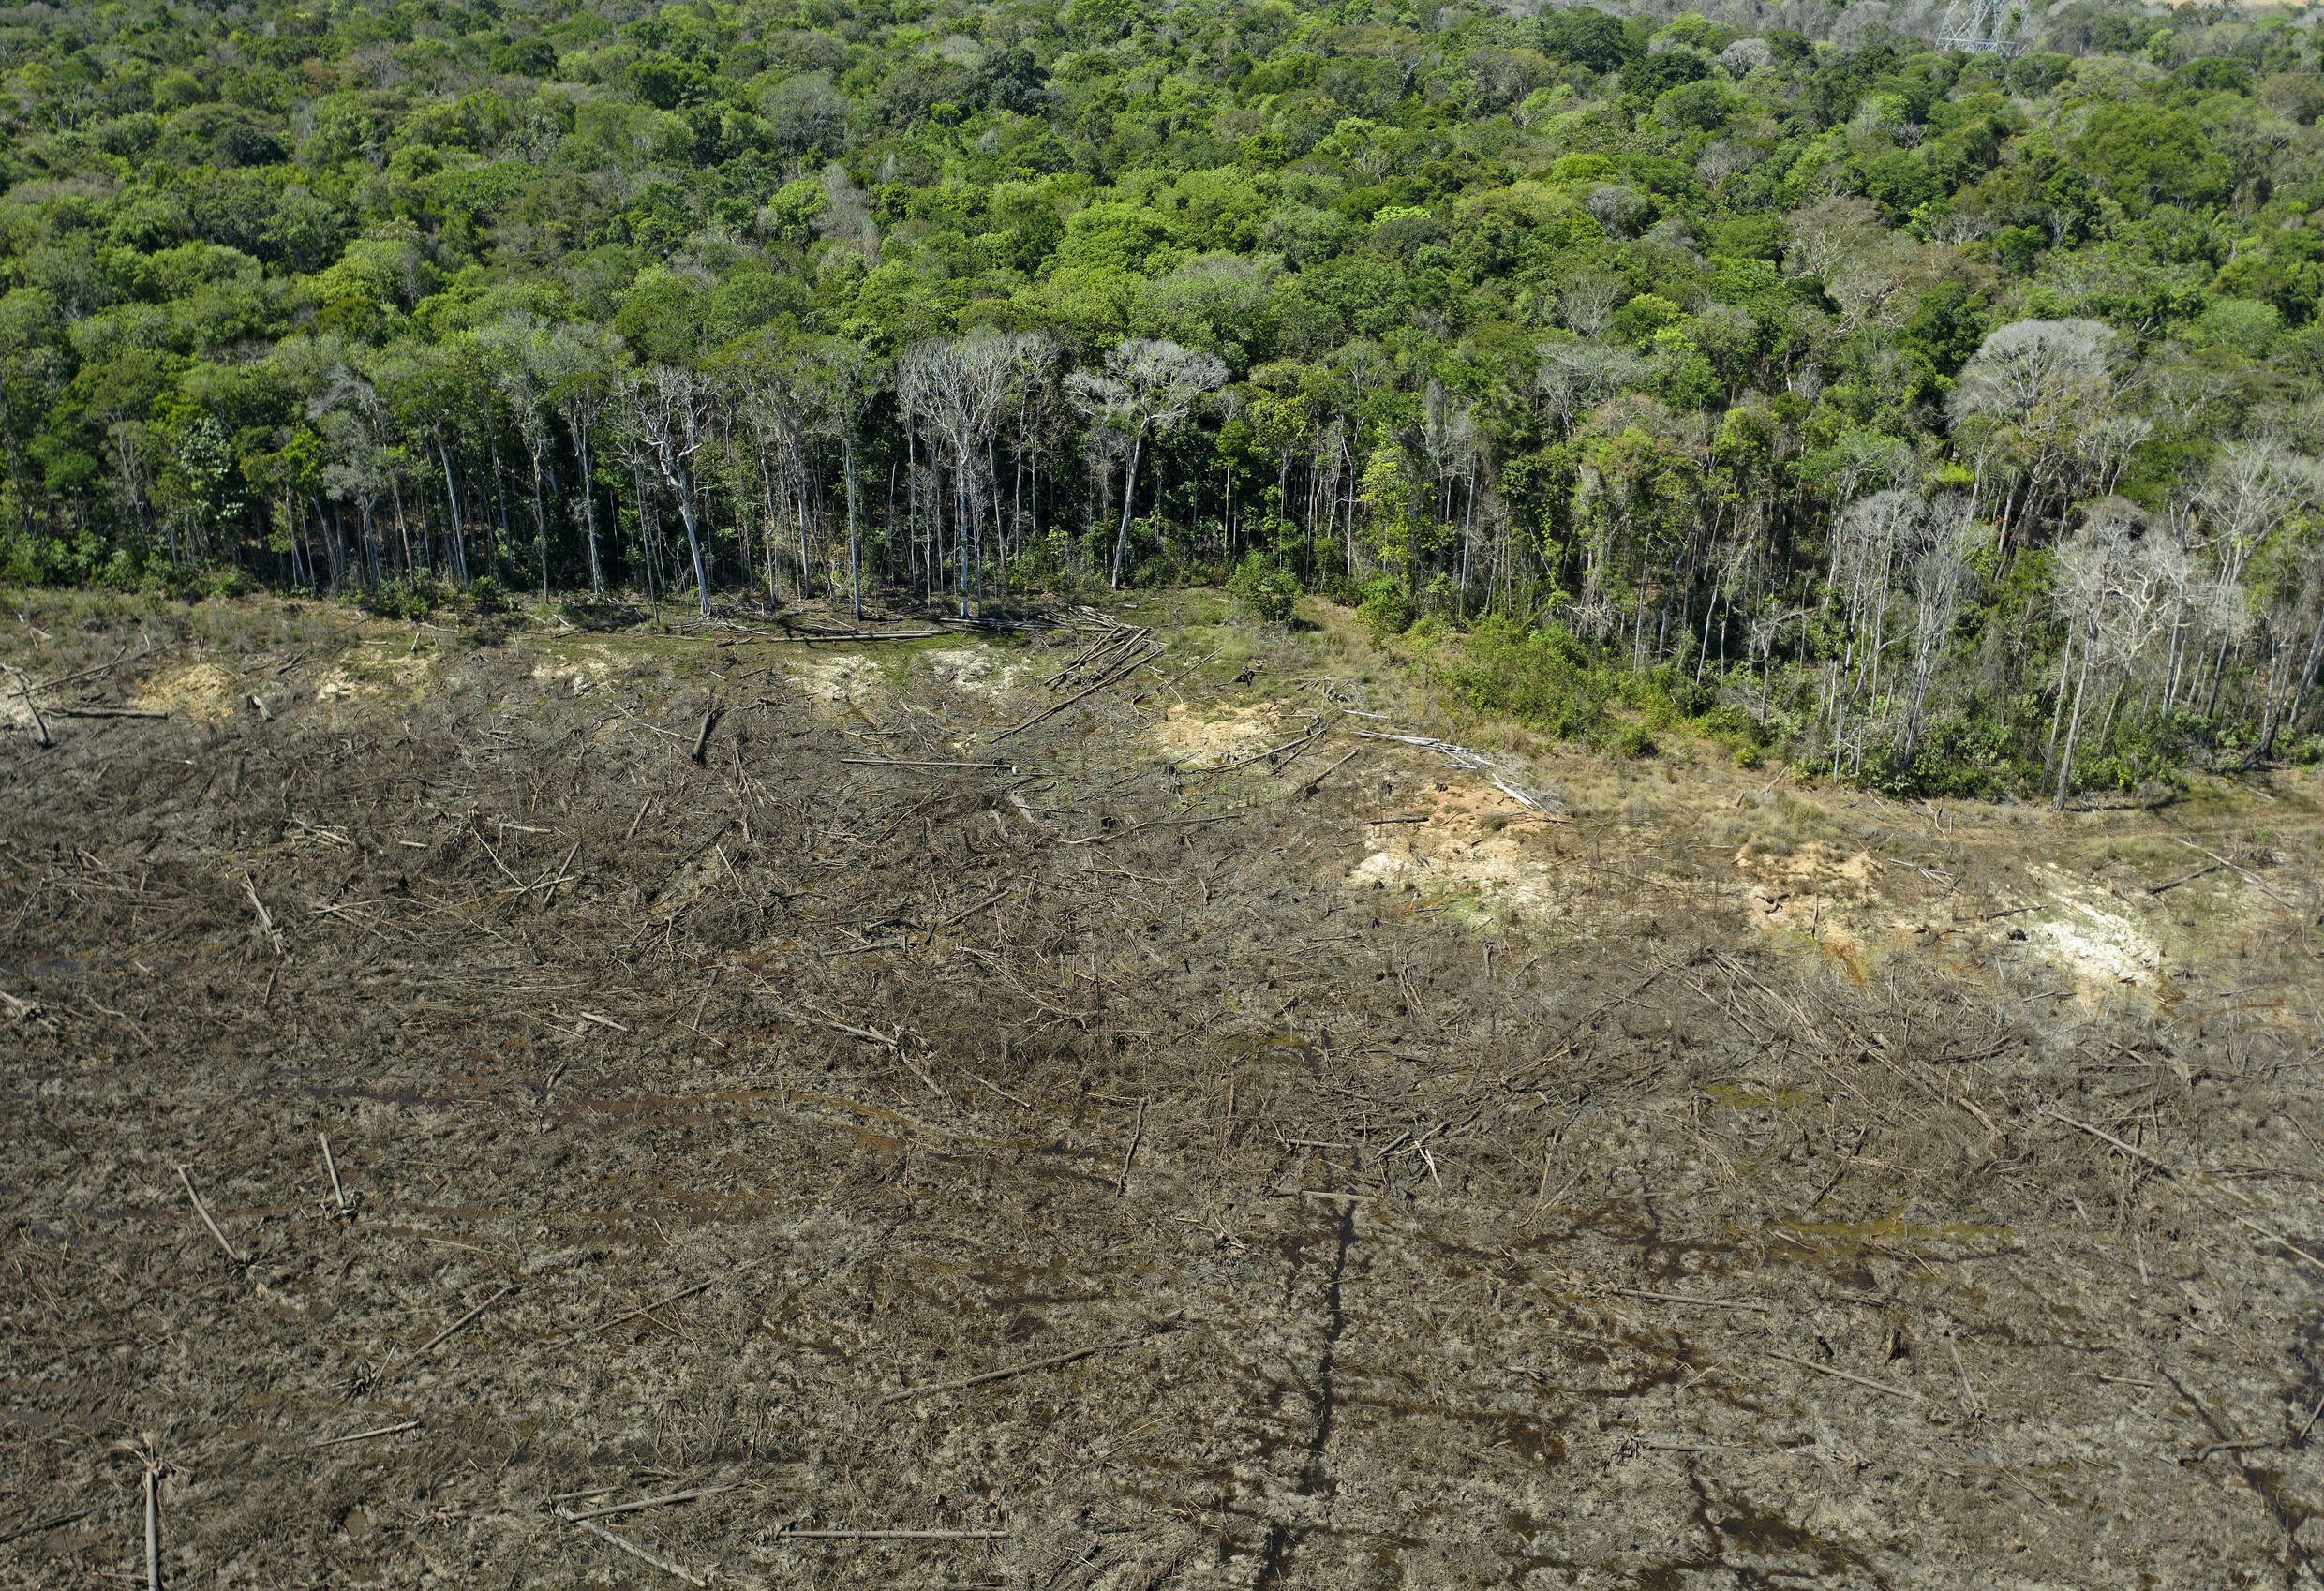 Aerial view of a deforested area near Sinop, Mato Grosso state, Brazil, taken on August 7, 2020